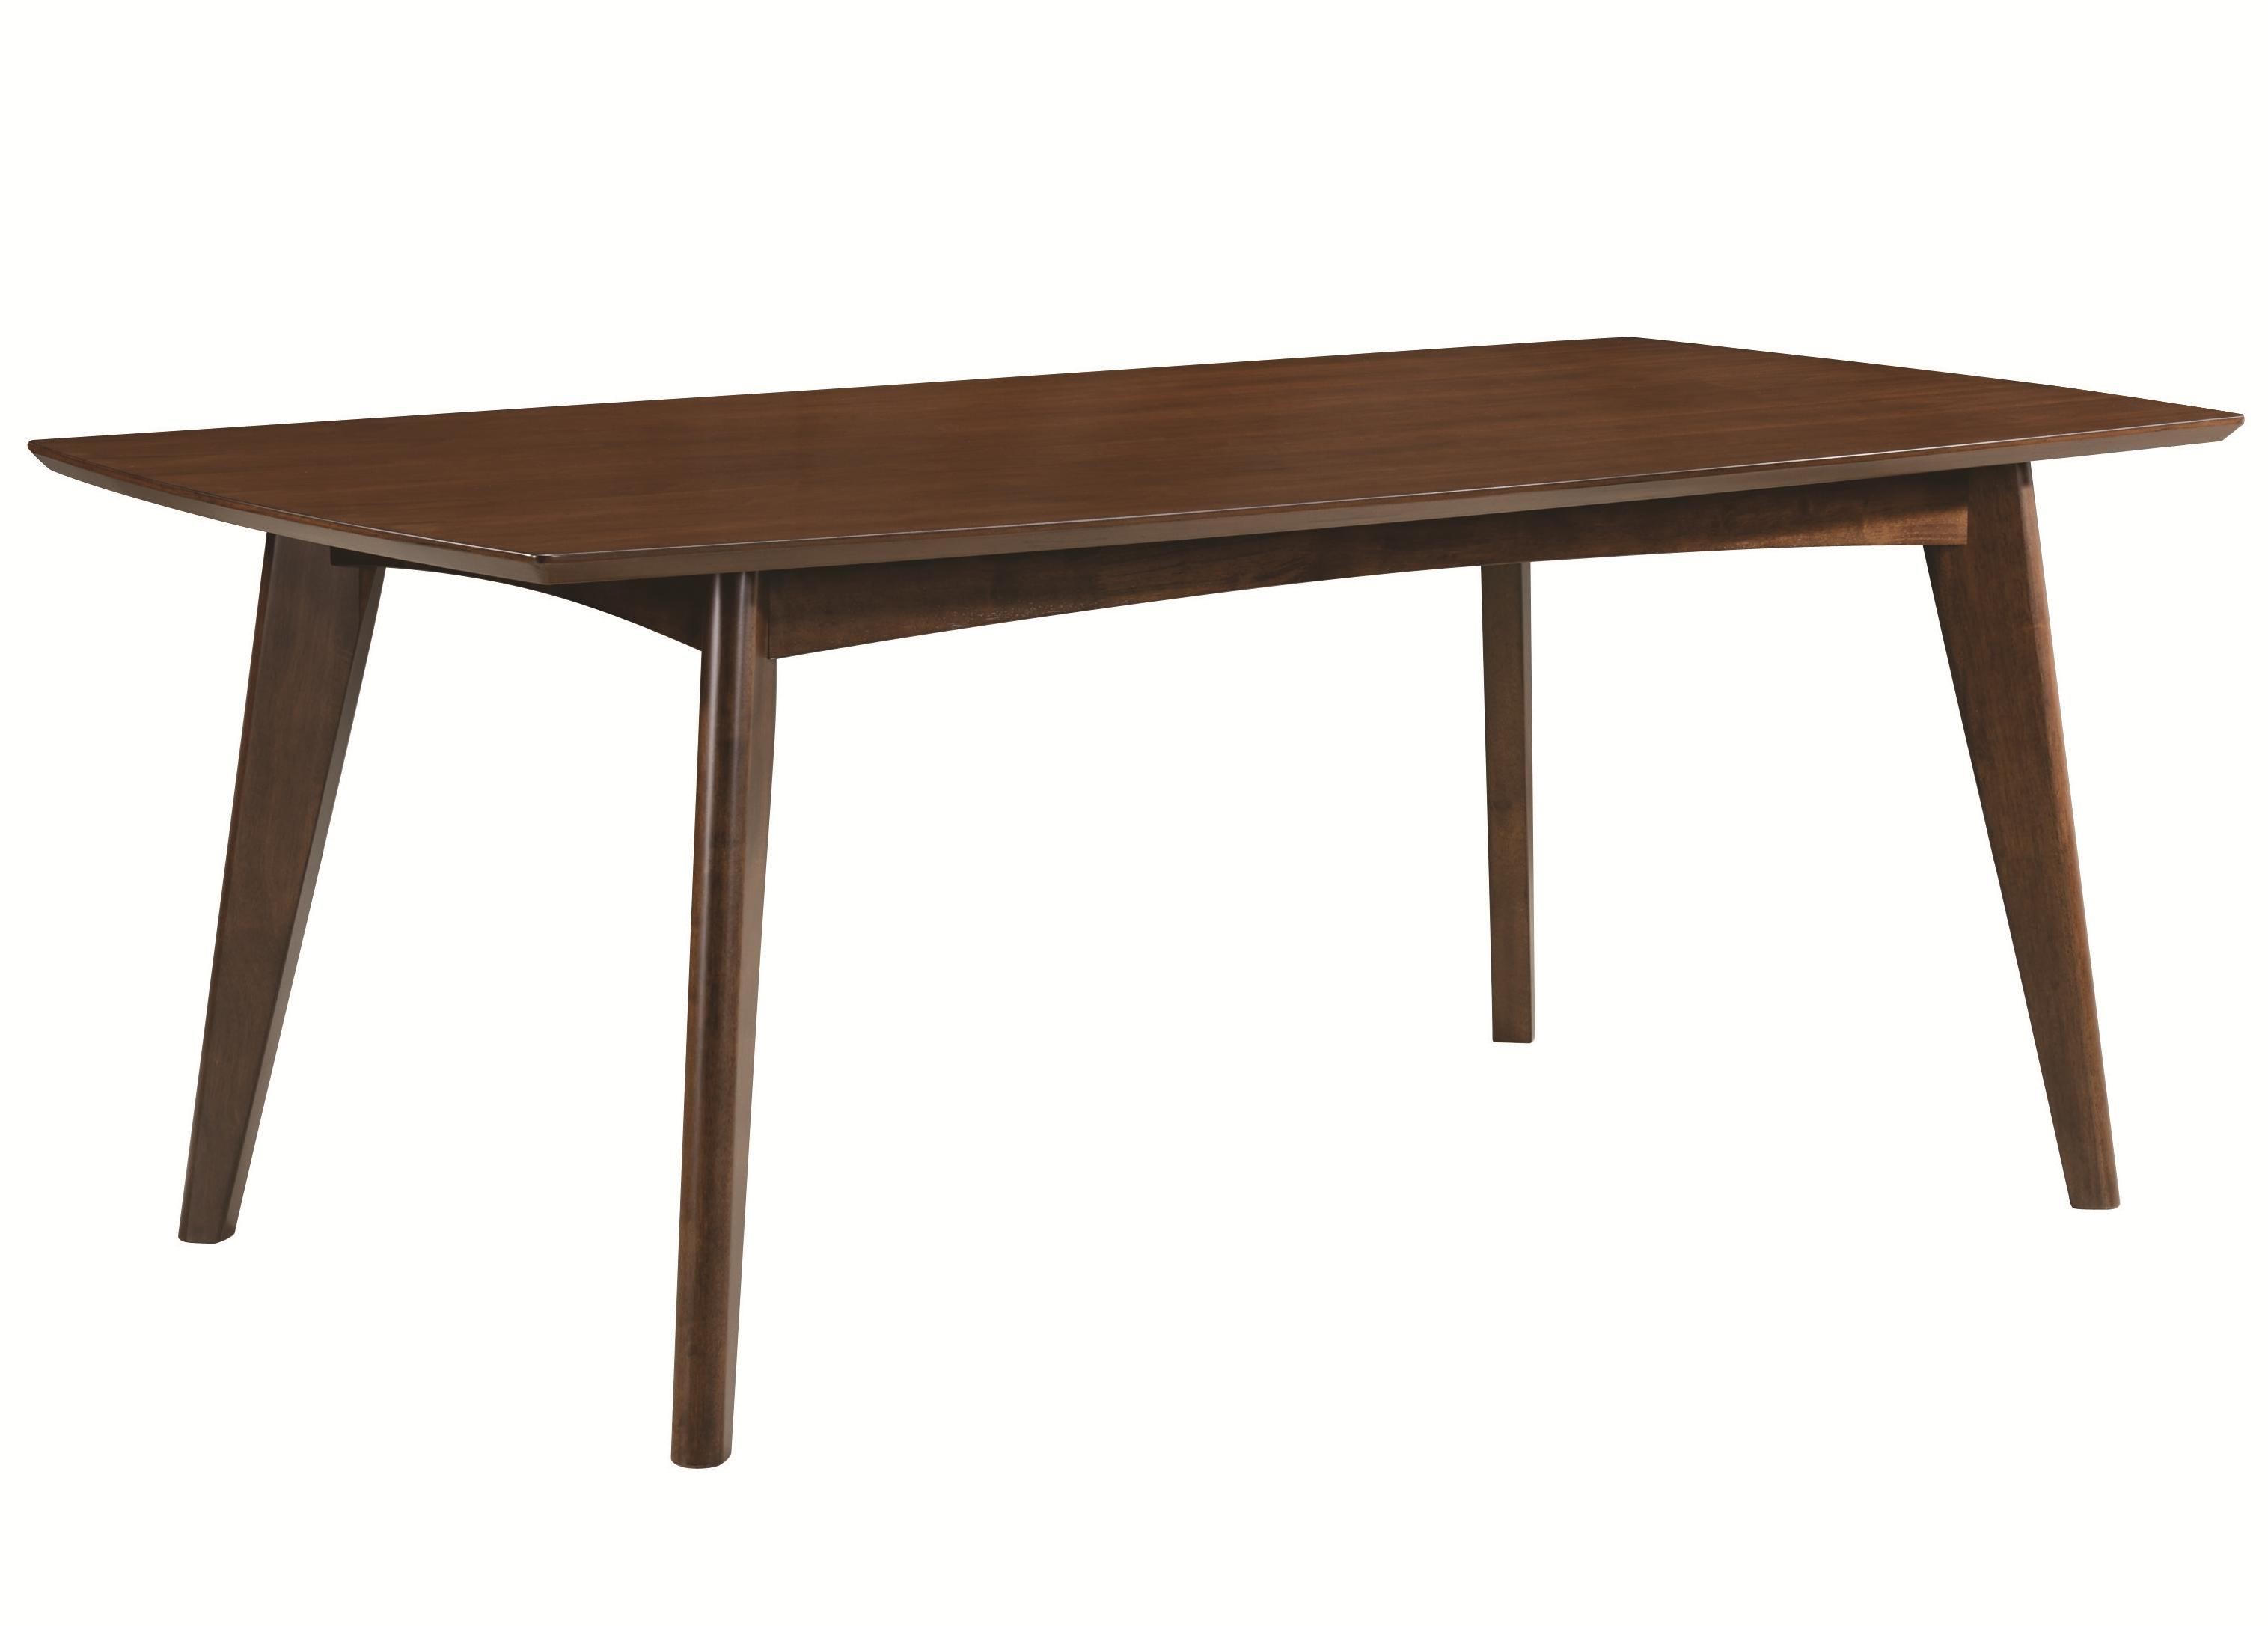 Coaster malone 105351 mid century modern casual dining for Informal dining table